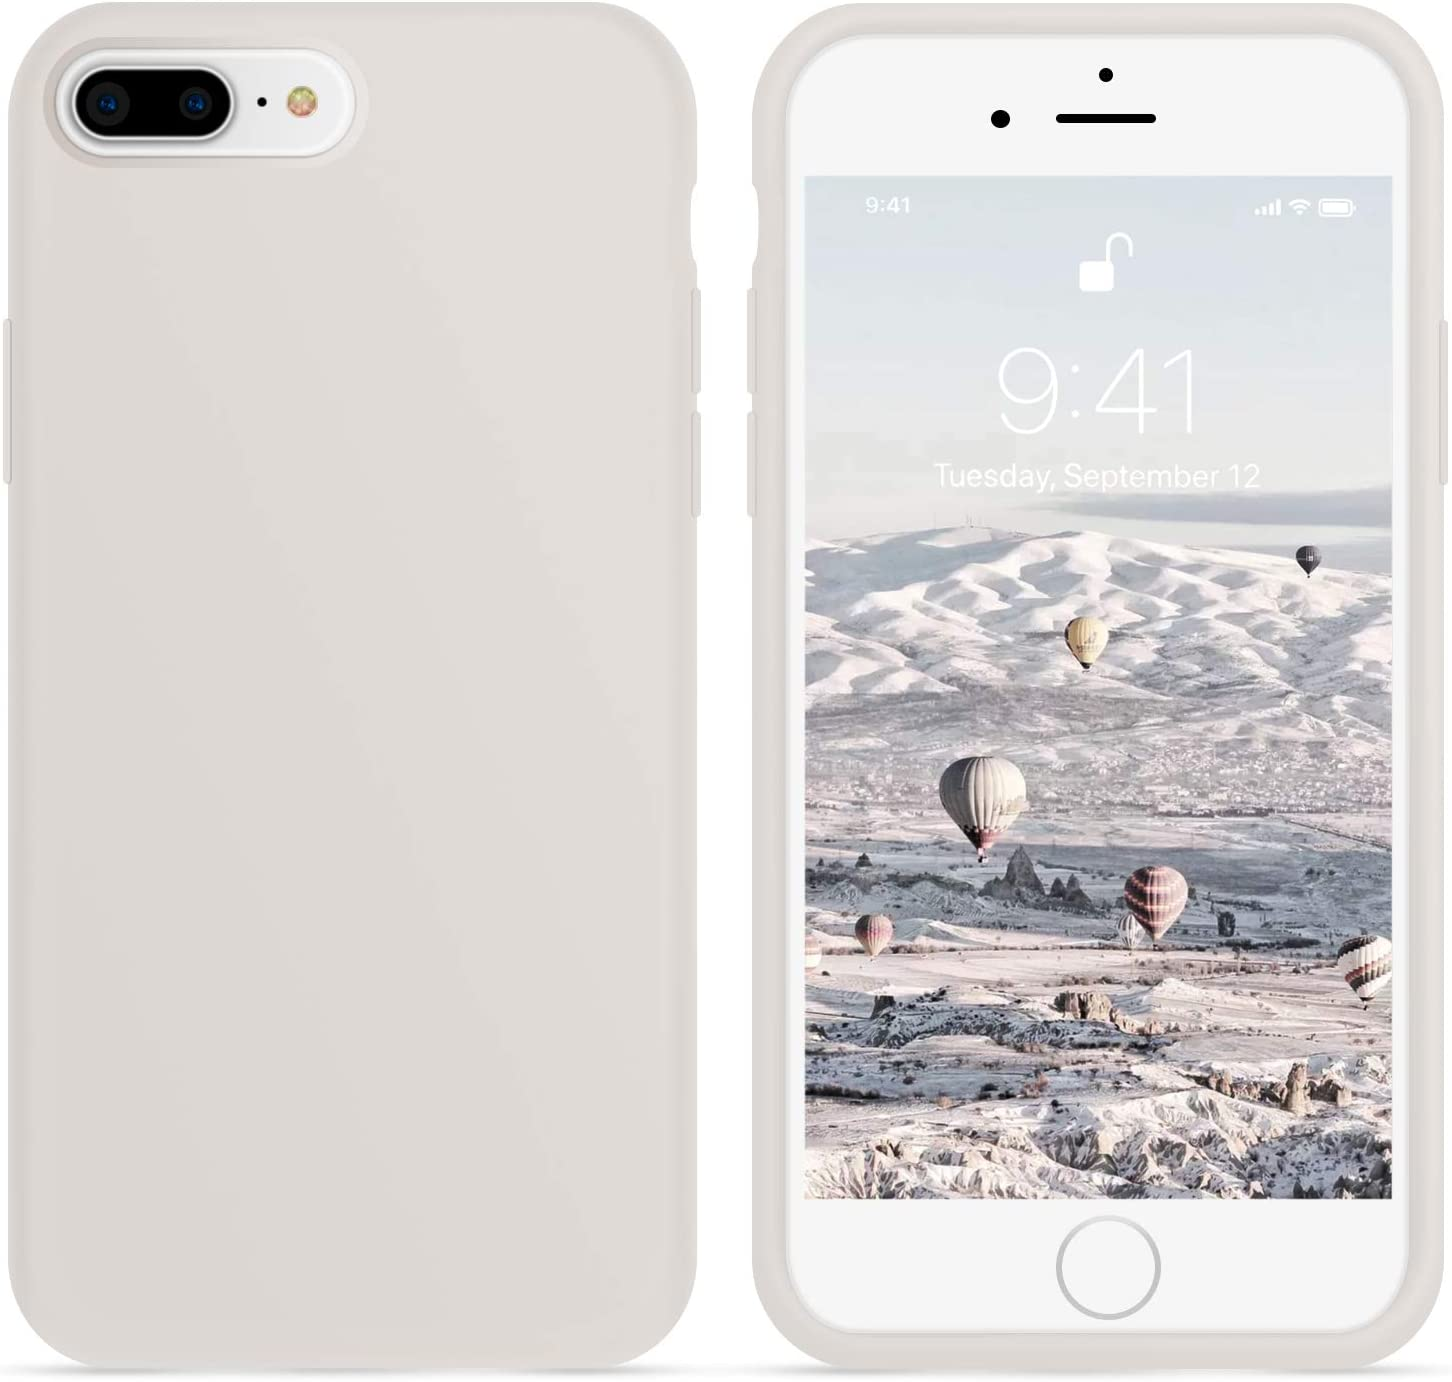 OTOFLY iPhone 8 Plus Case,iPhone 7 Plus Case,[Silky and Soft Touch Series] Premium Soft Silicone Rubber Full-Body Protective Bumper Case Compatible with iPhone 7/8 Plus (White Stone)